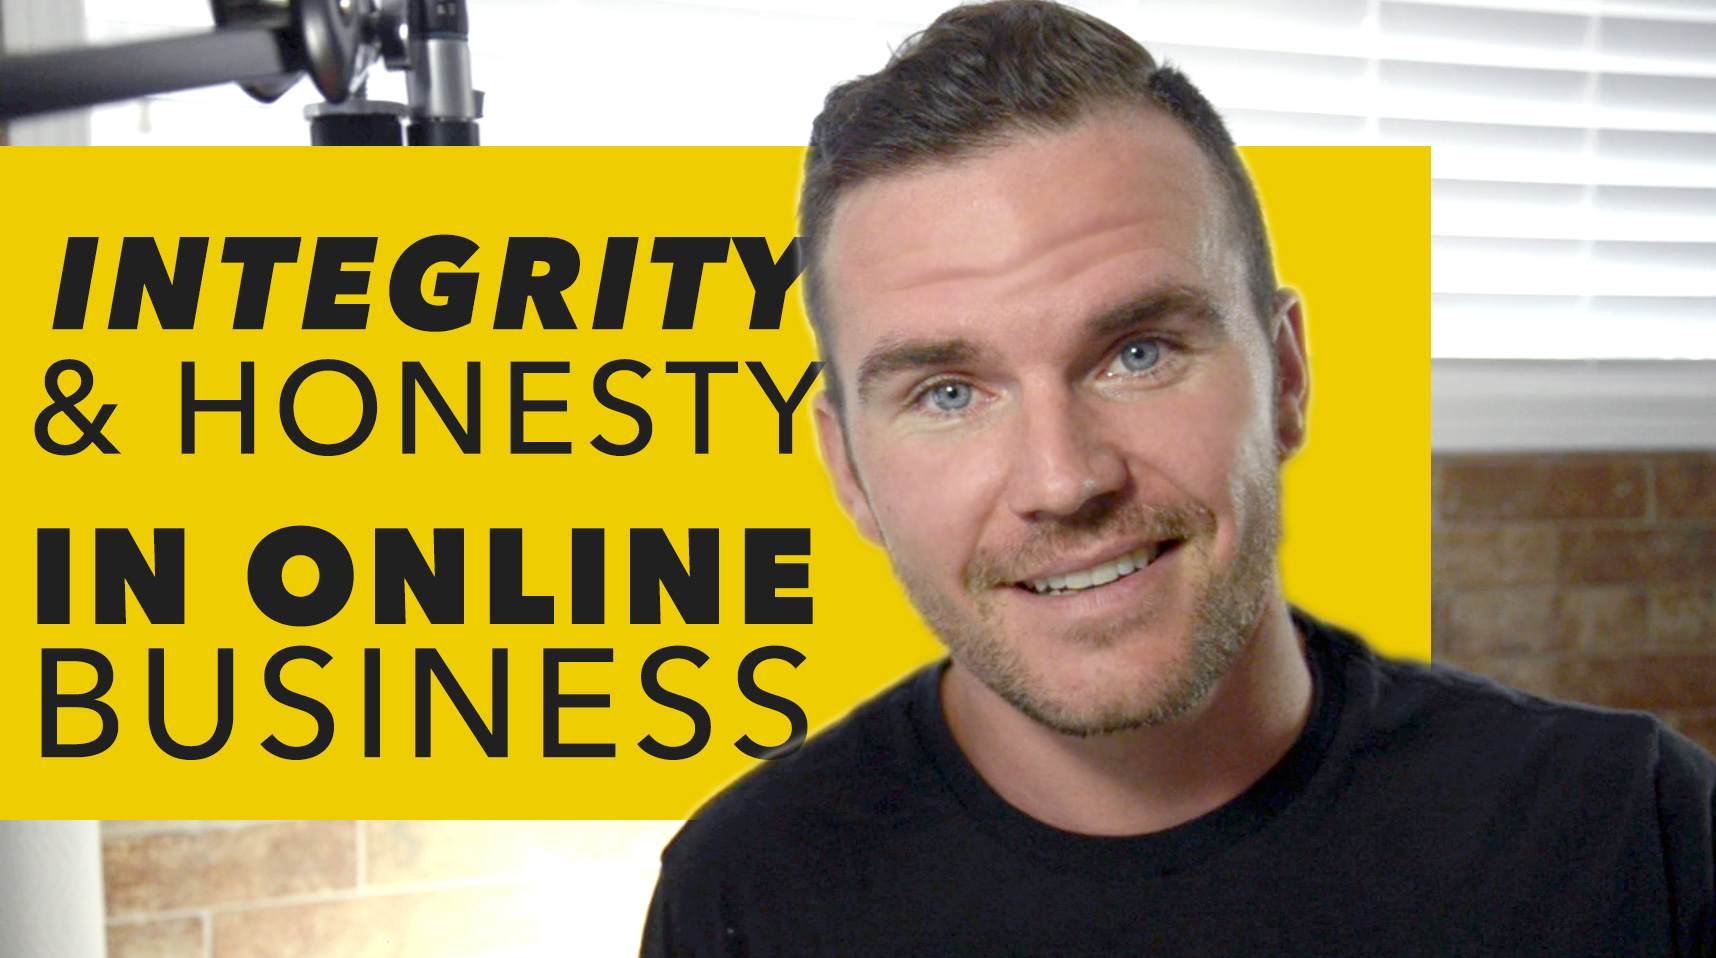 honesty & integrity in online business